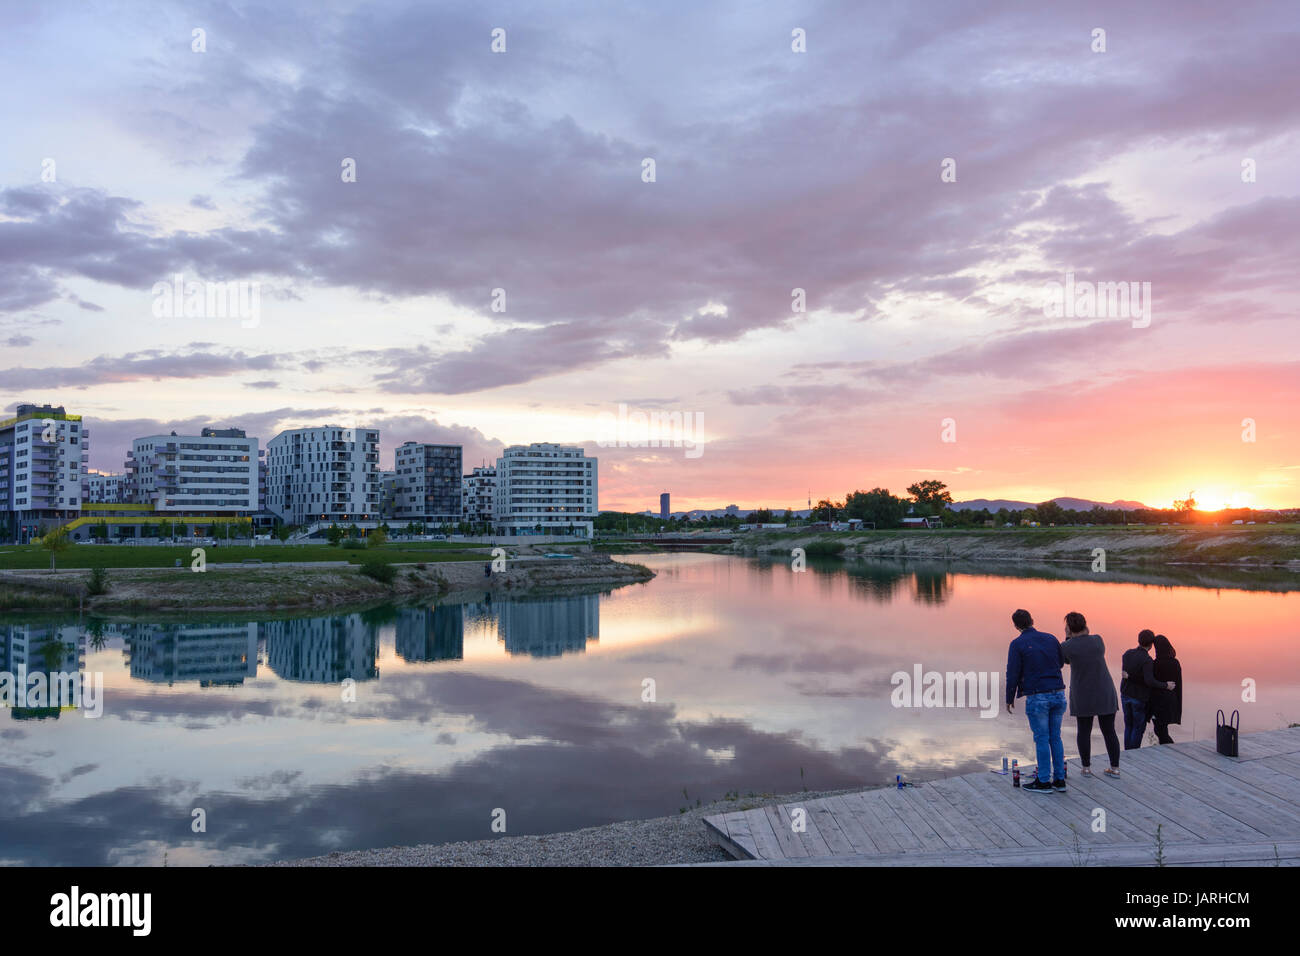 Seestadt (lake city) Aspern in construction, houses, lake, people take each others picture, Wien, Vienna, 22. Donaustadt, Stock Photo